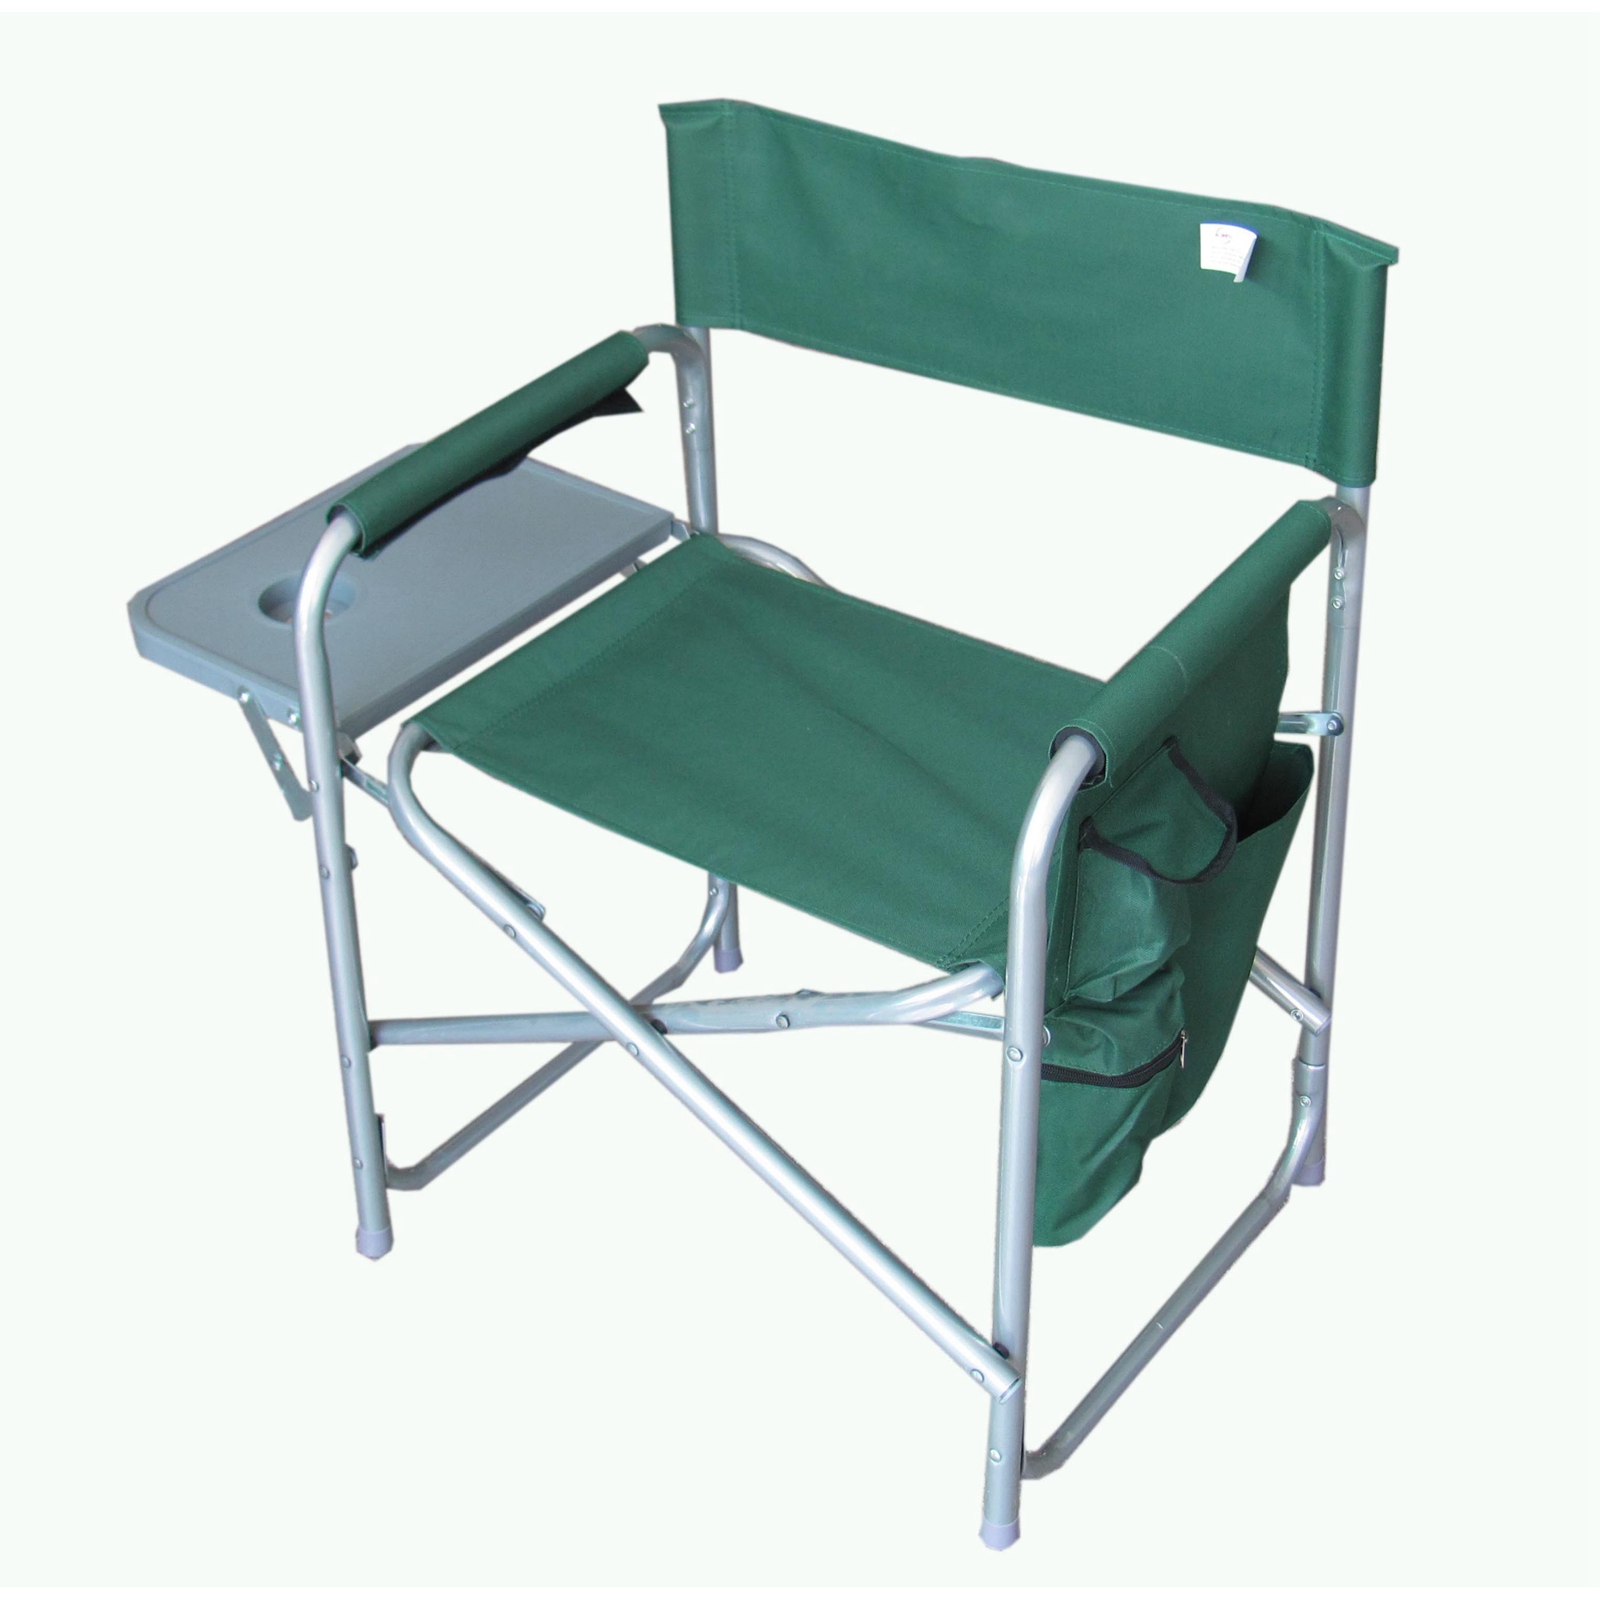 outdoor folding chair with side table red chairs target portable fishing camping garden seat